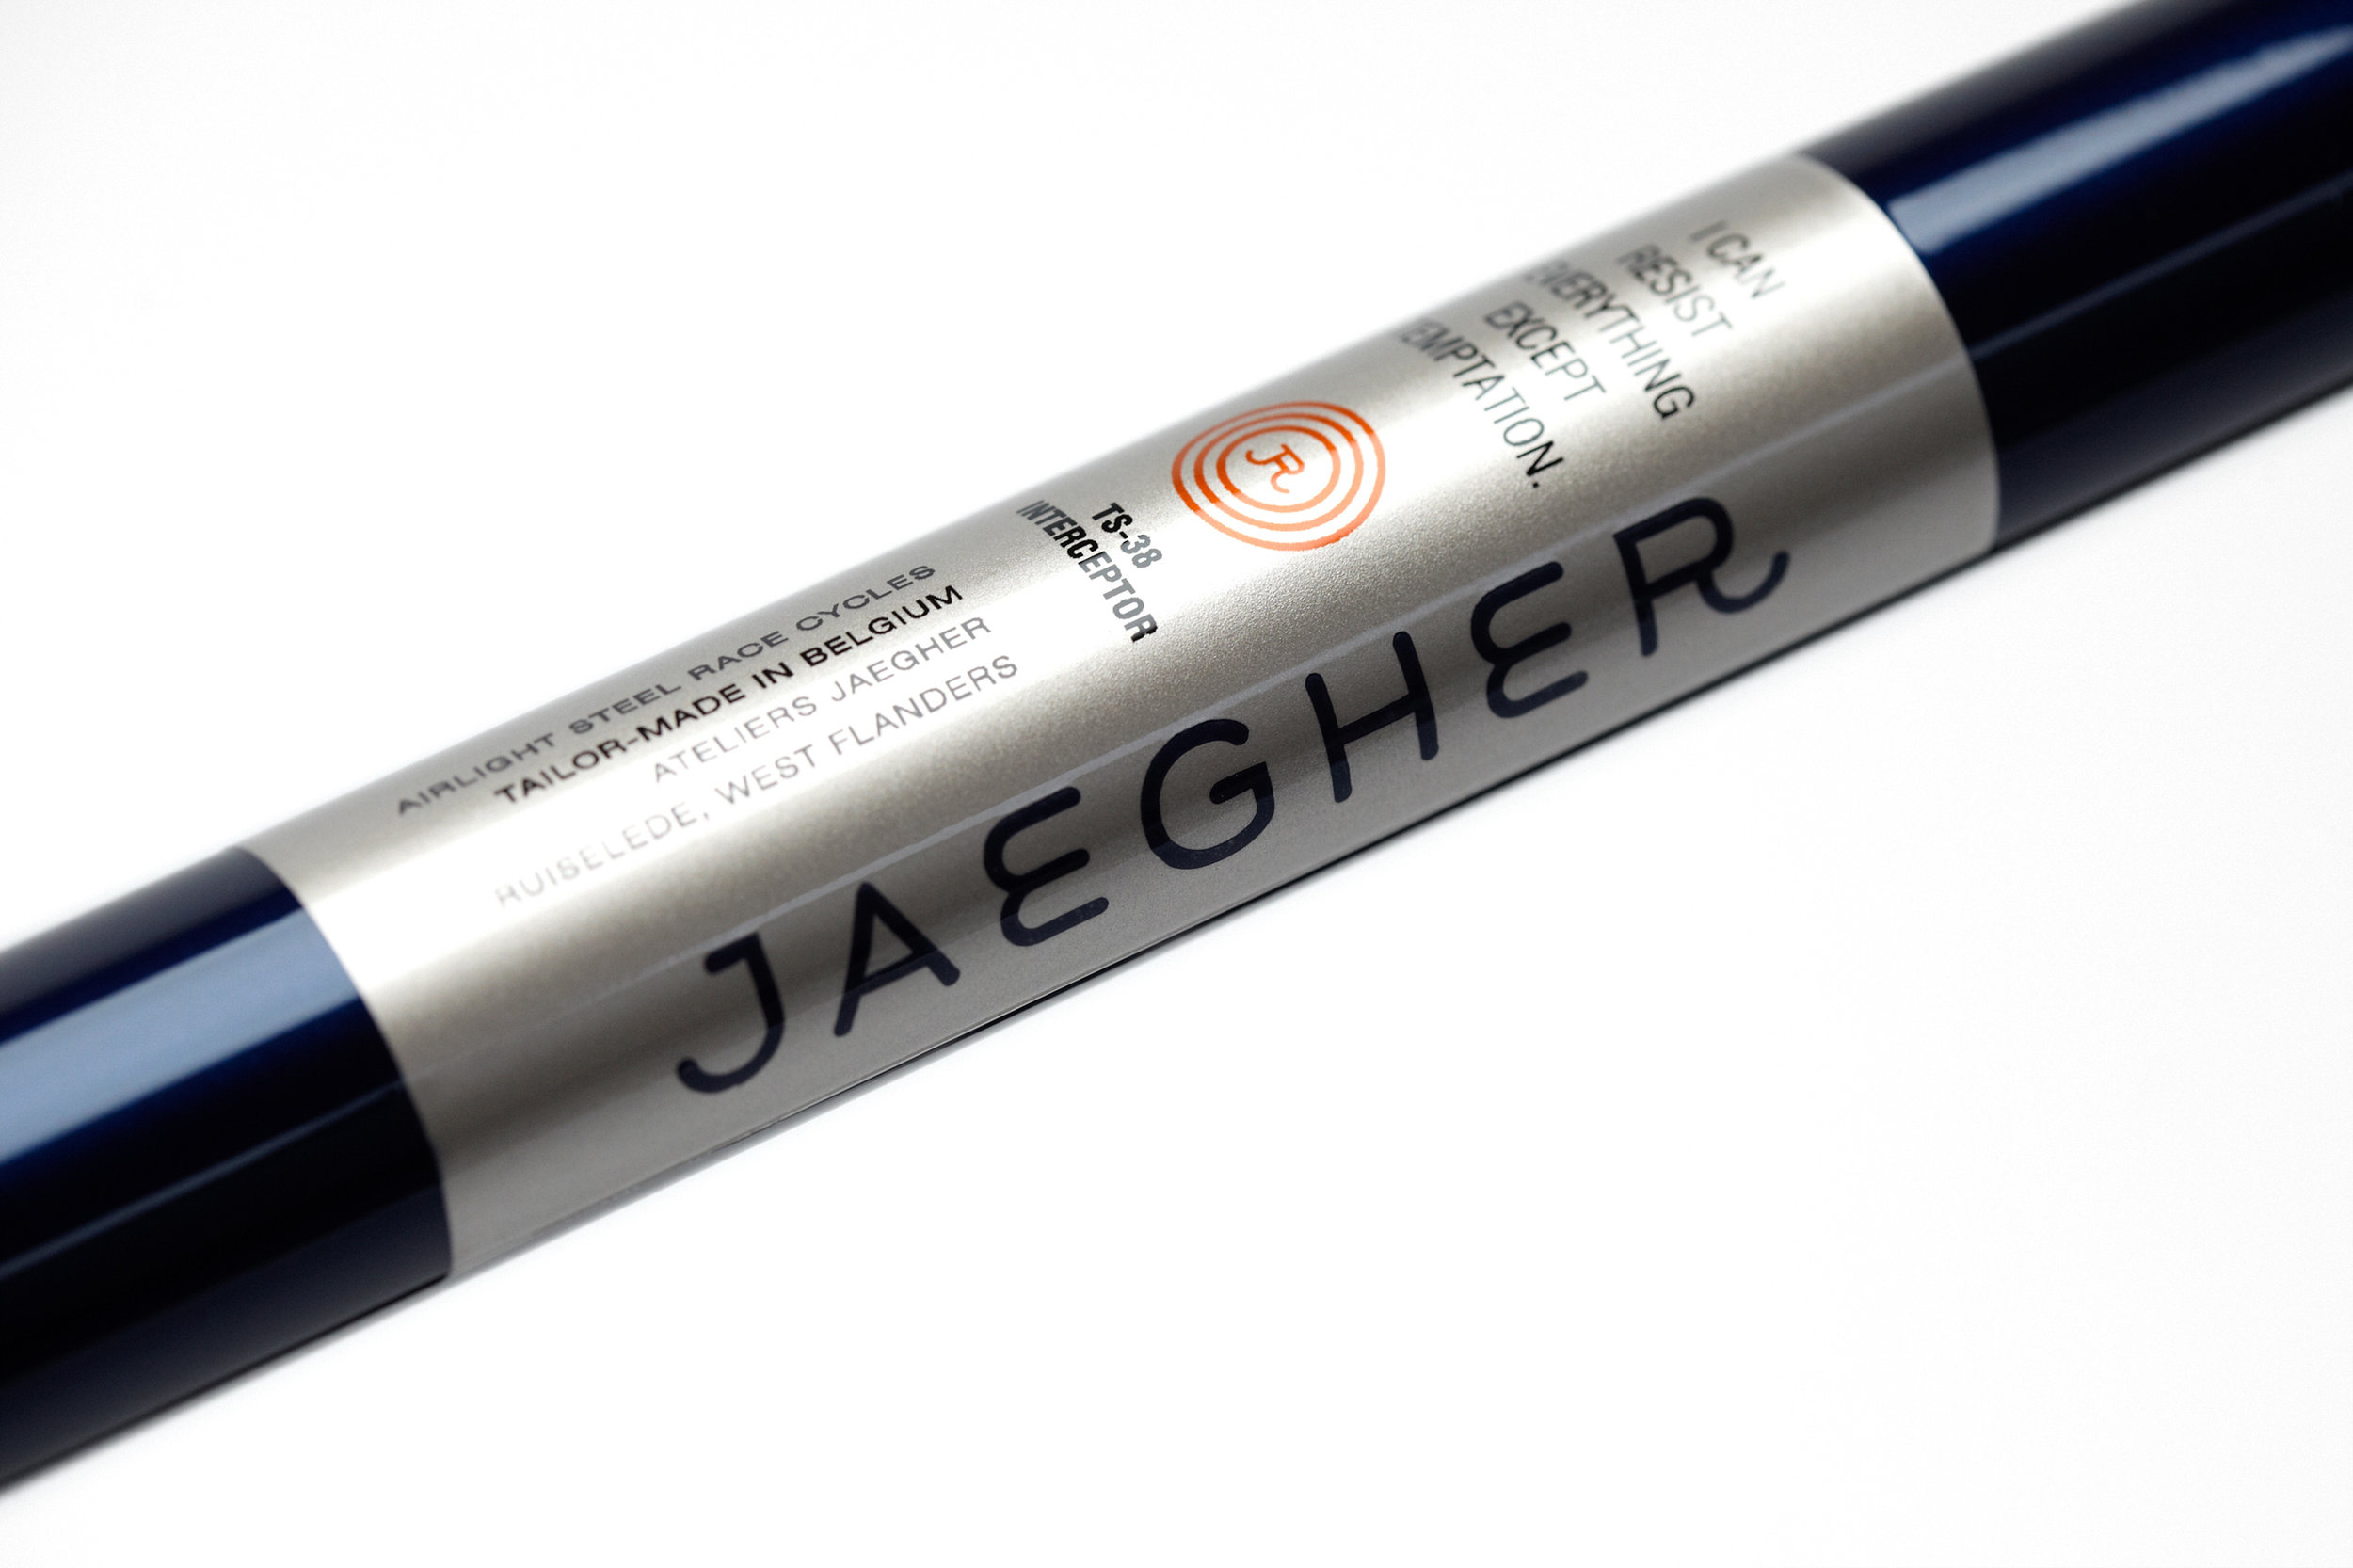 Jaegher-–-Airlight-Steel-Race-Cycles-rennrad-bicycle-minimal-branding-by-jelle-marechal-mindsparkle-mag-2.jpeg